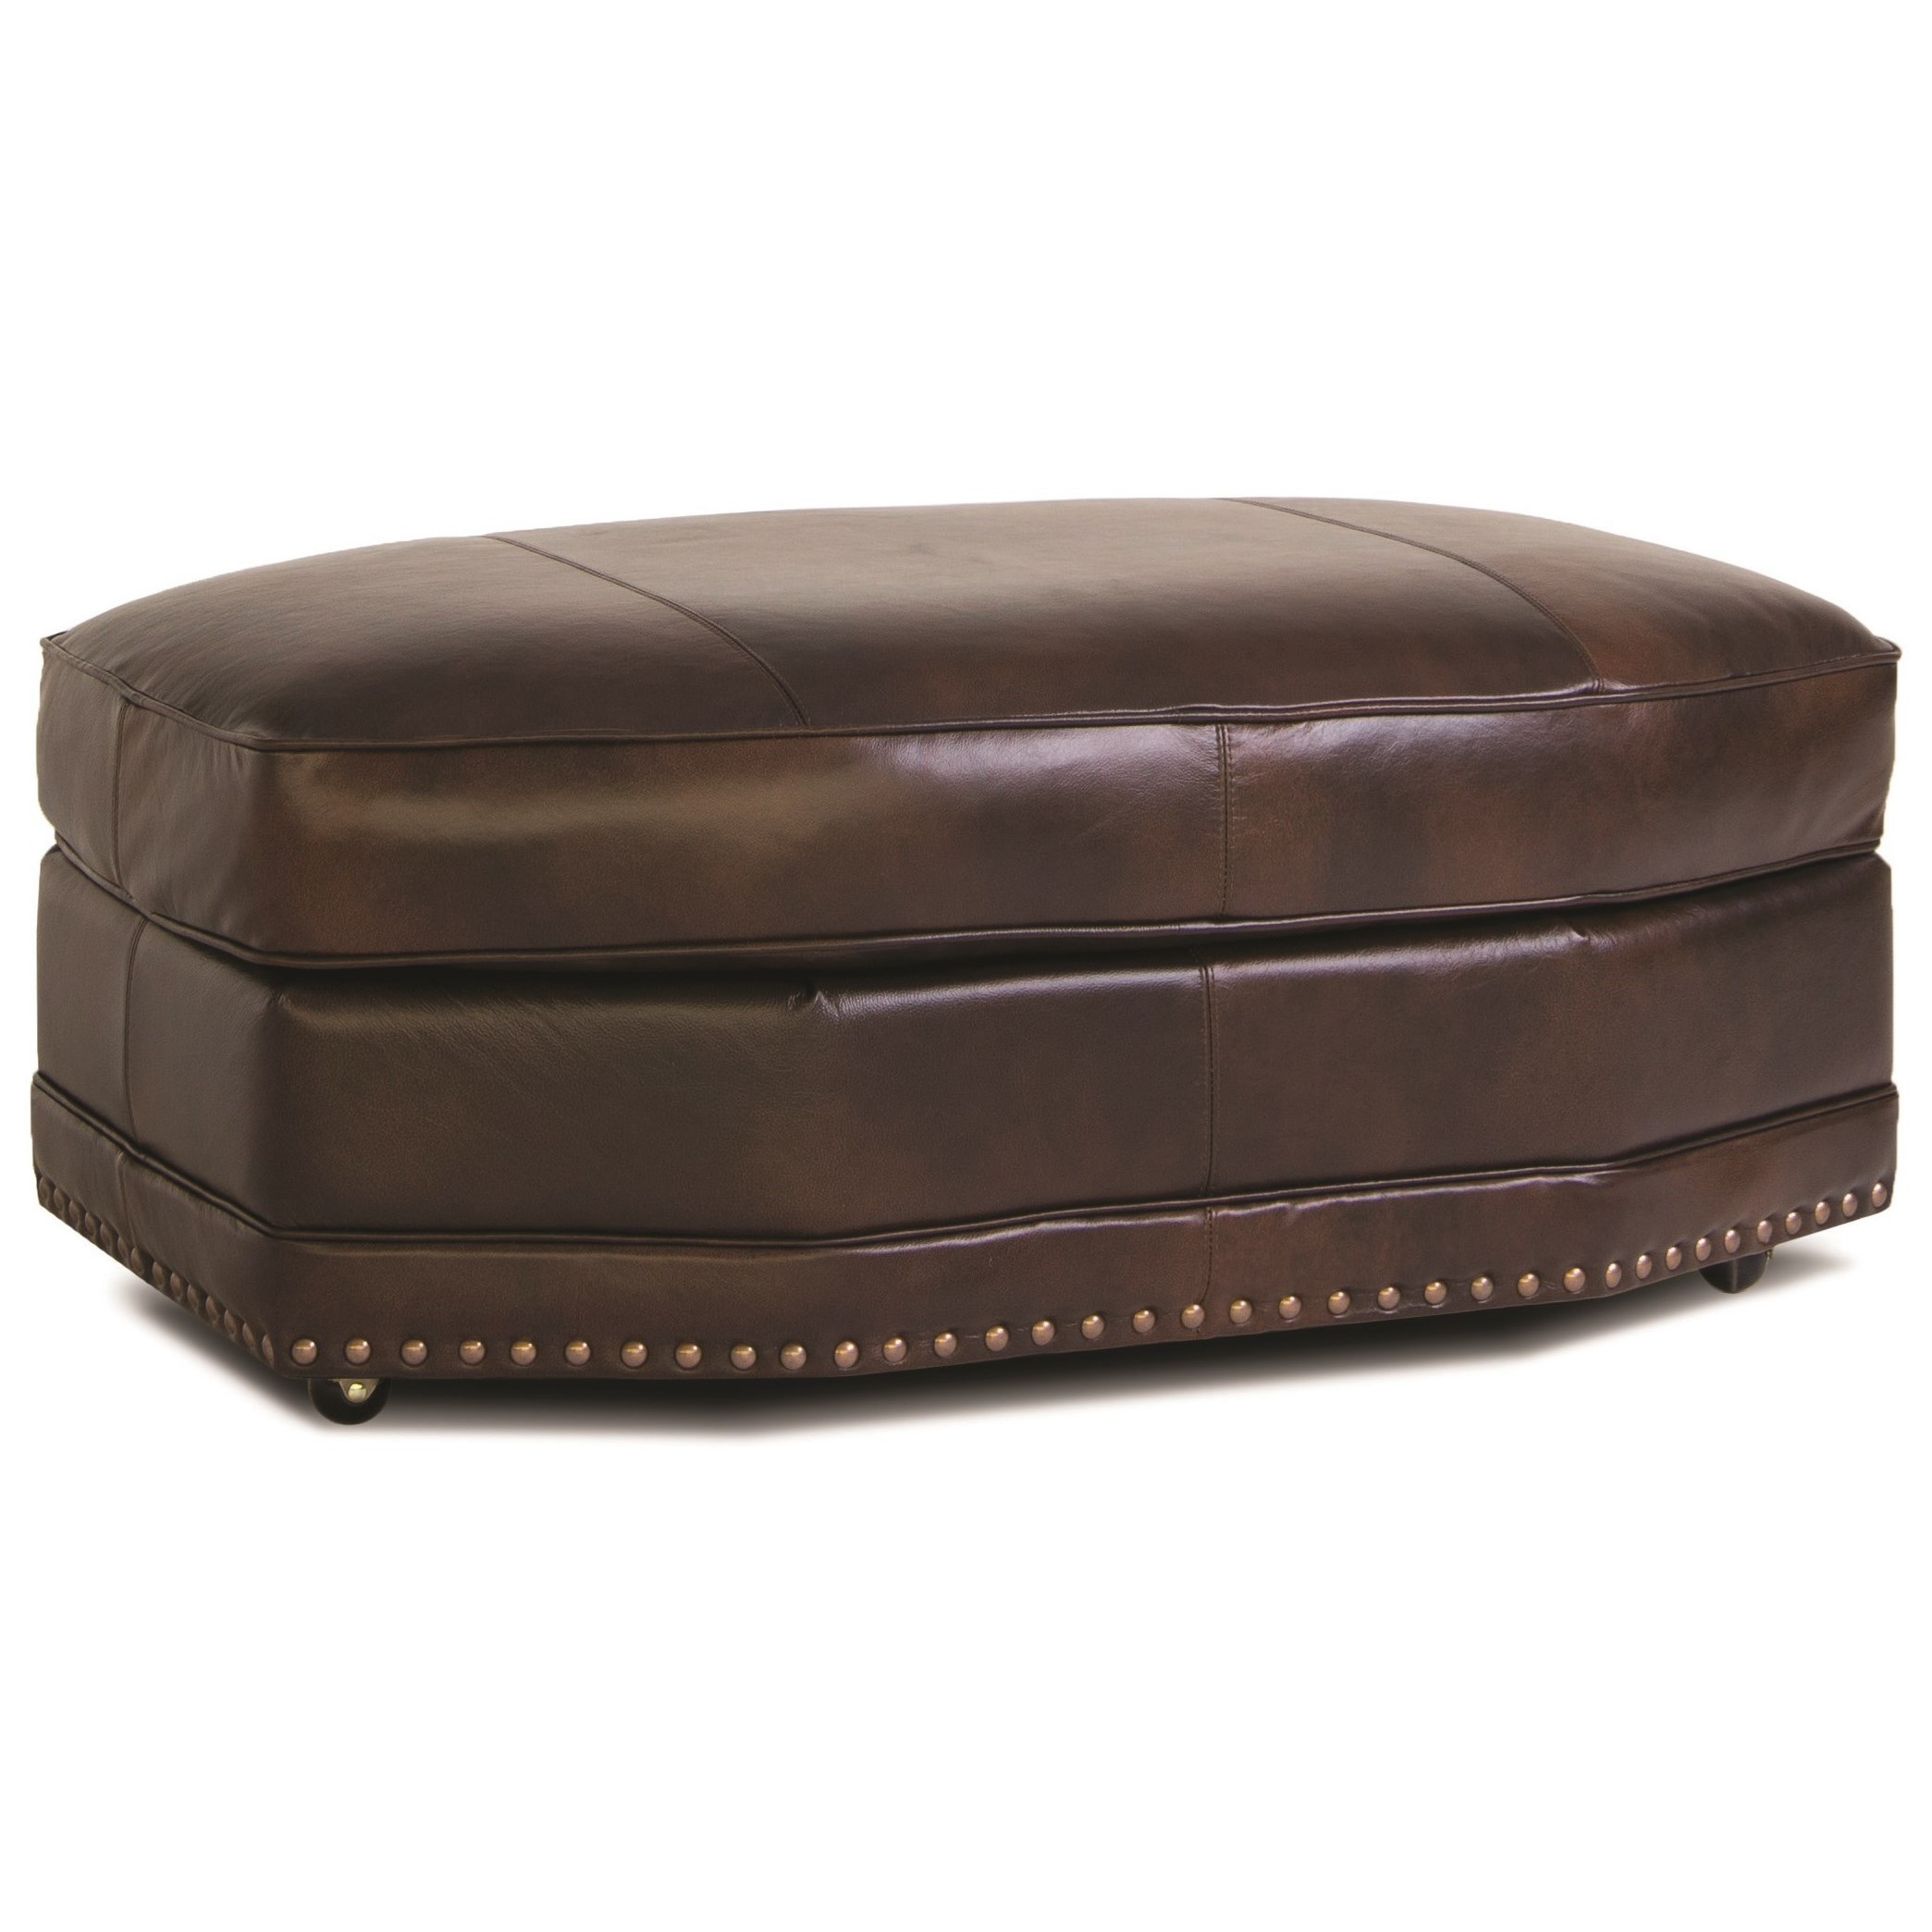 393 Ottoman by Smith Brothers at Turk Furniture